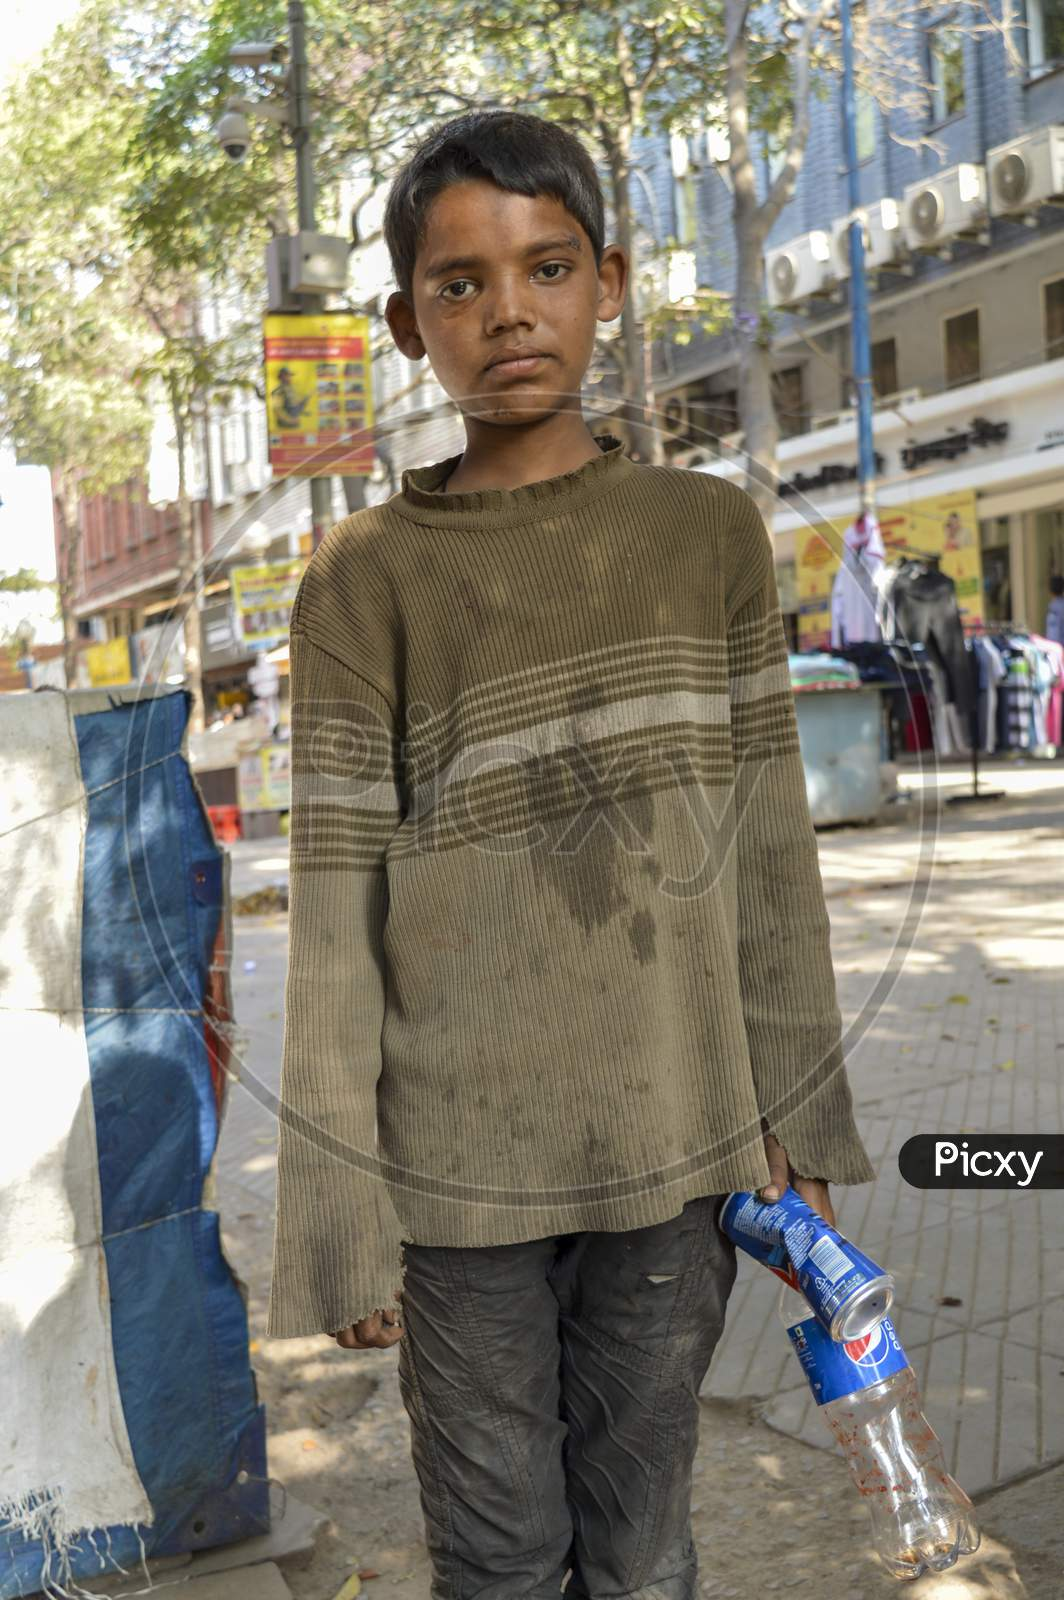 A Indian Child Beggar Asking For Money For Buying Food.